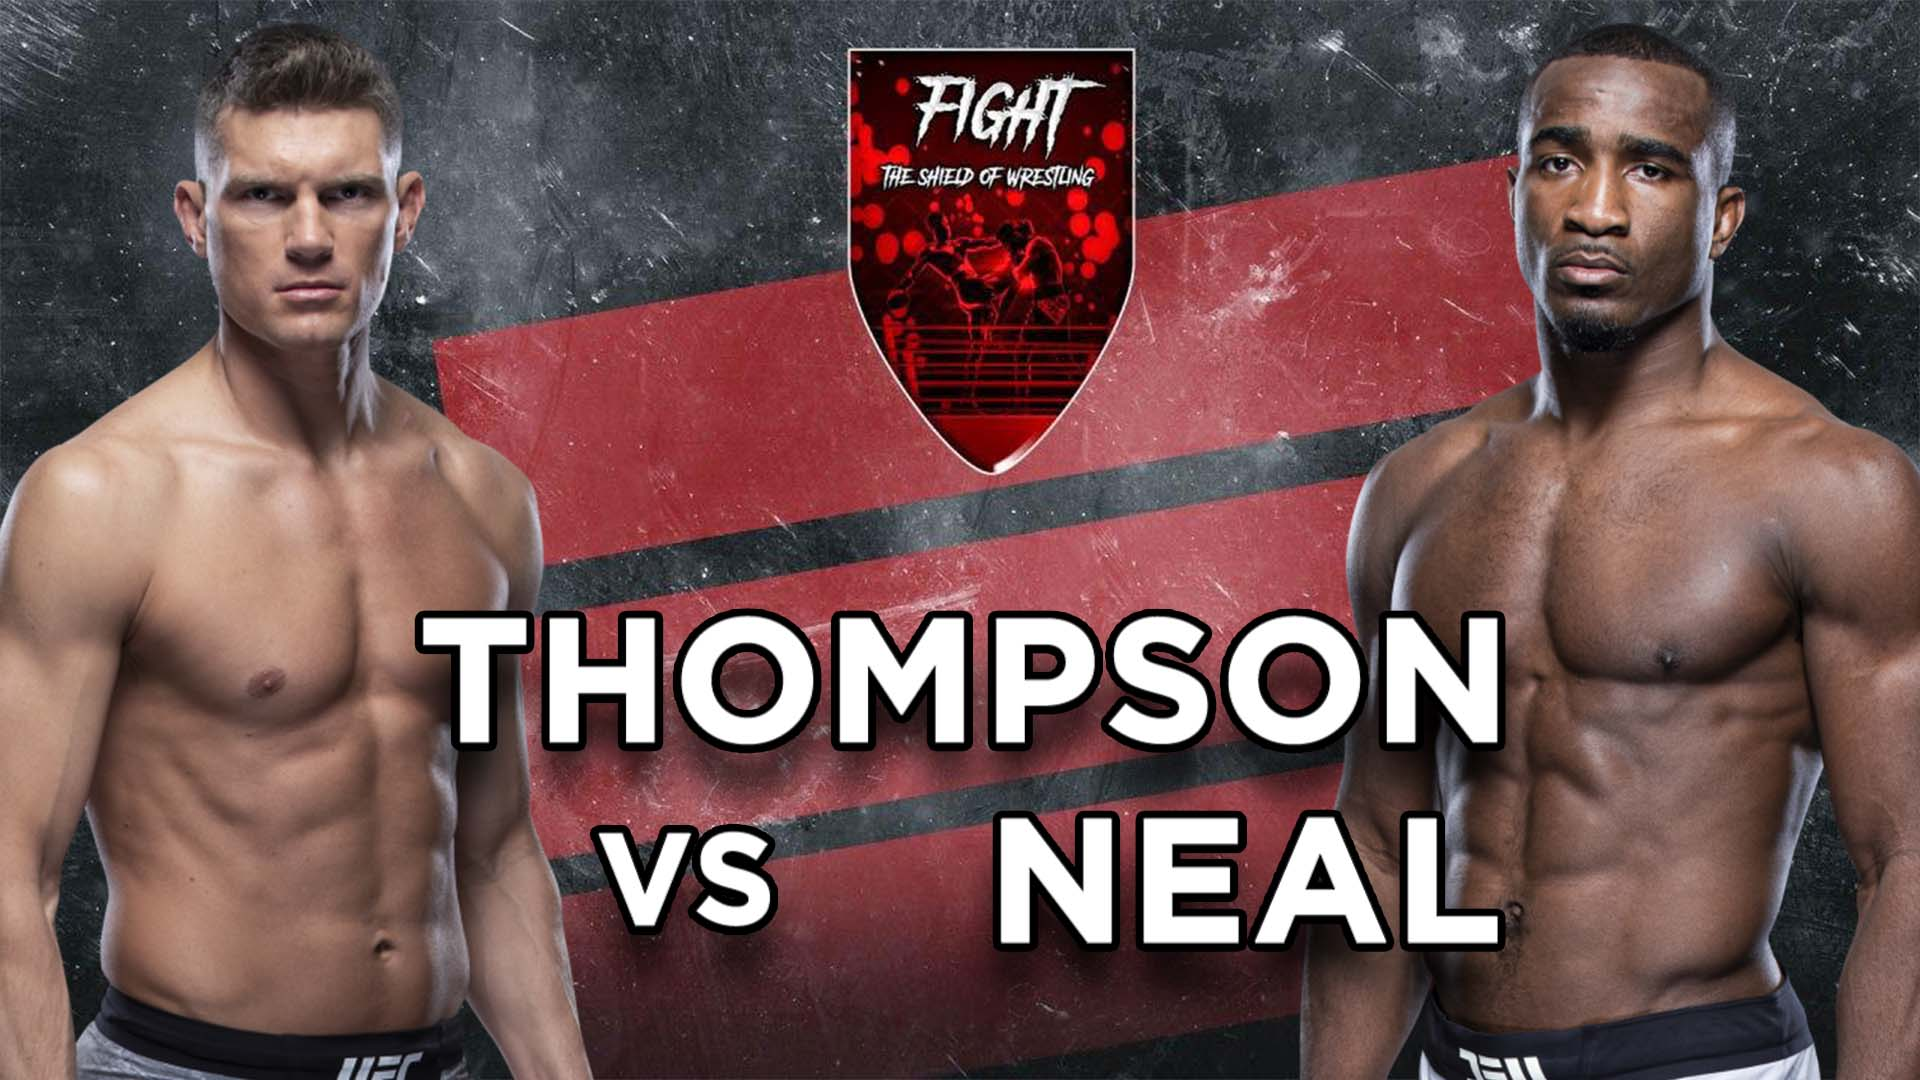 Anteprima UFC Fight Night: Thompson vs Neal - Card completa